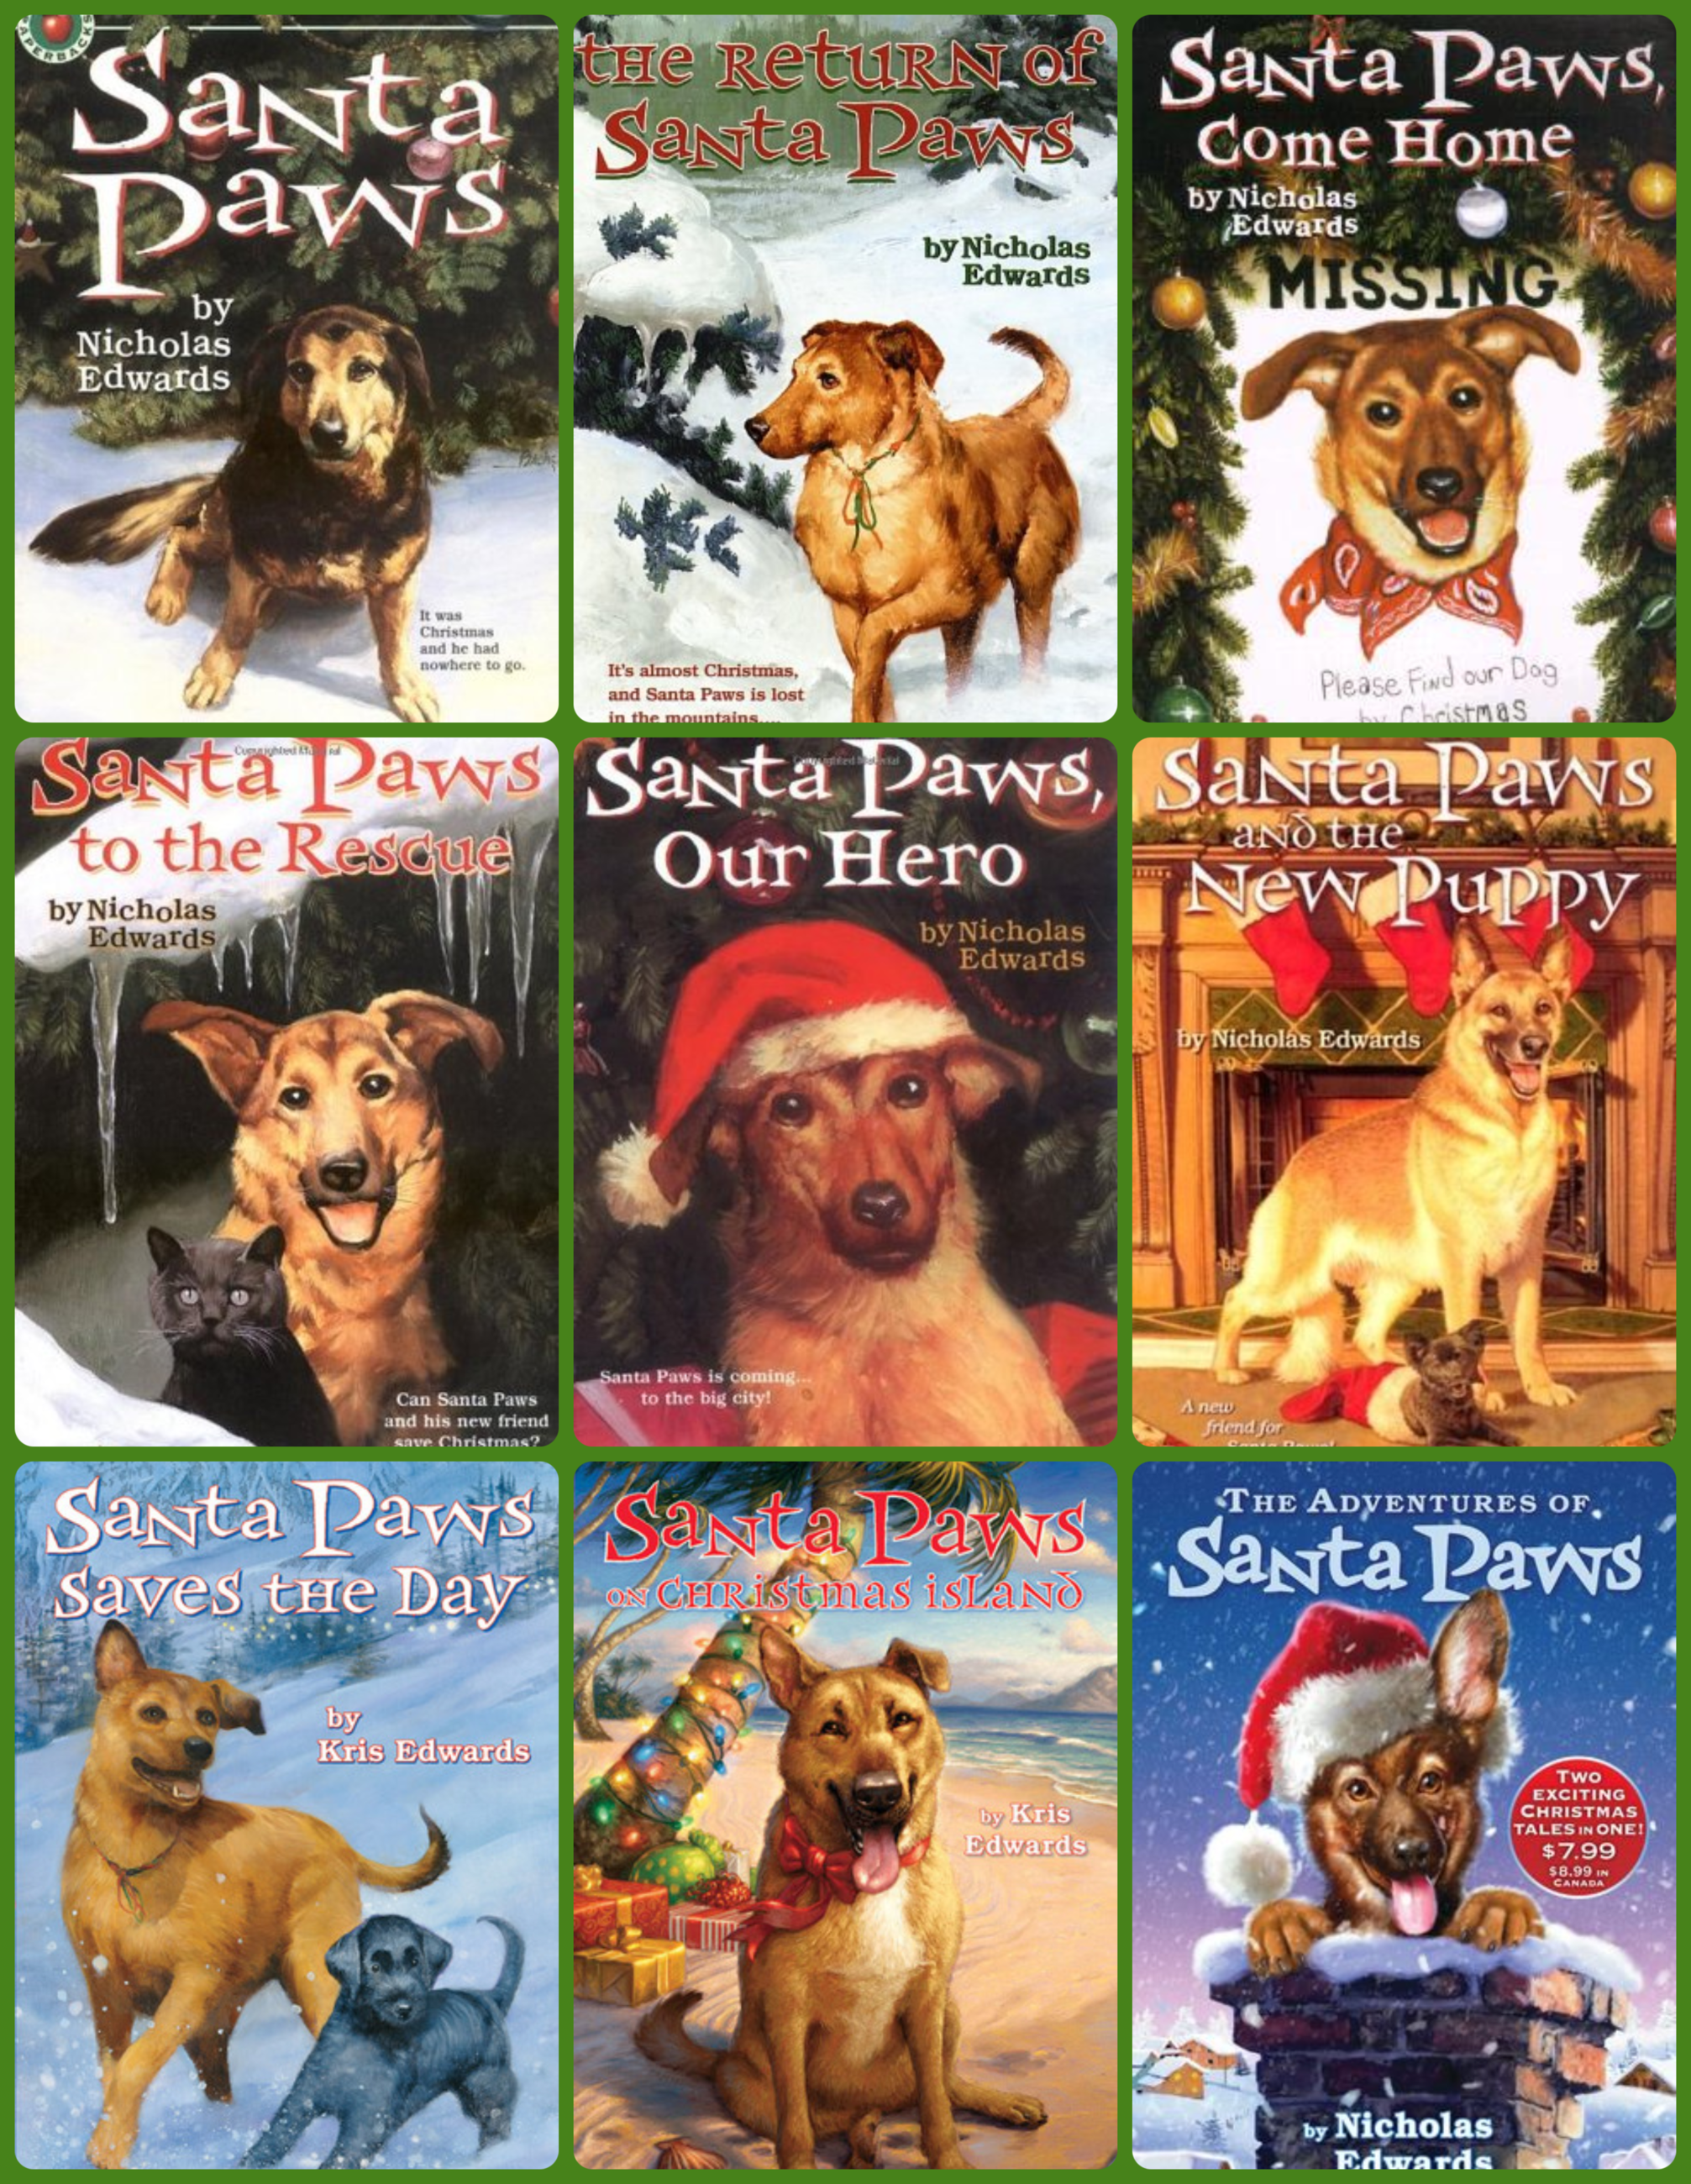 Santa Paws Series Collage